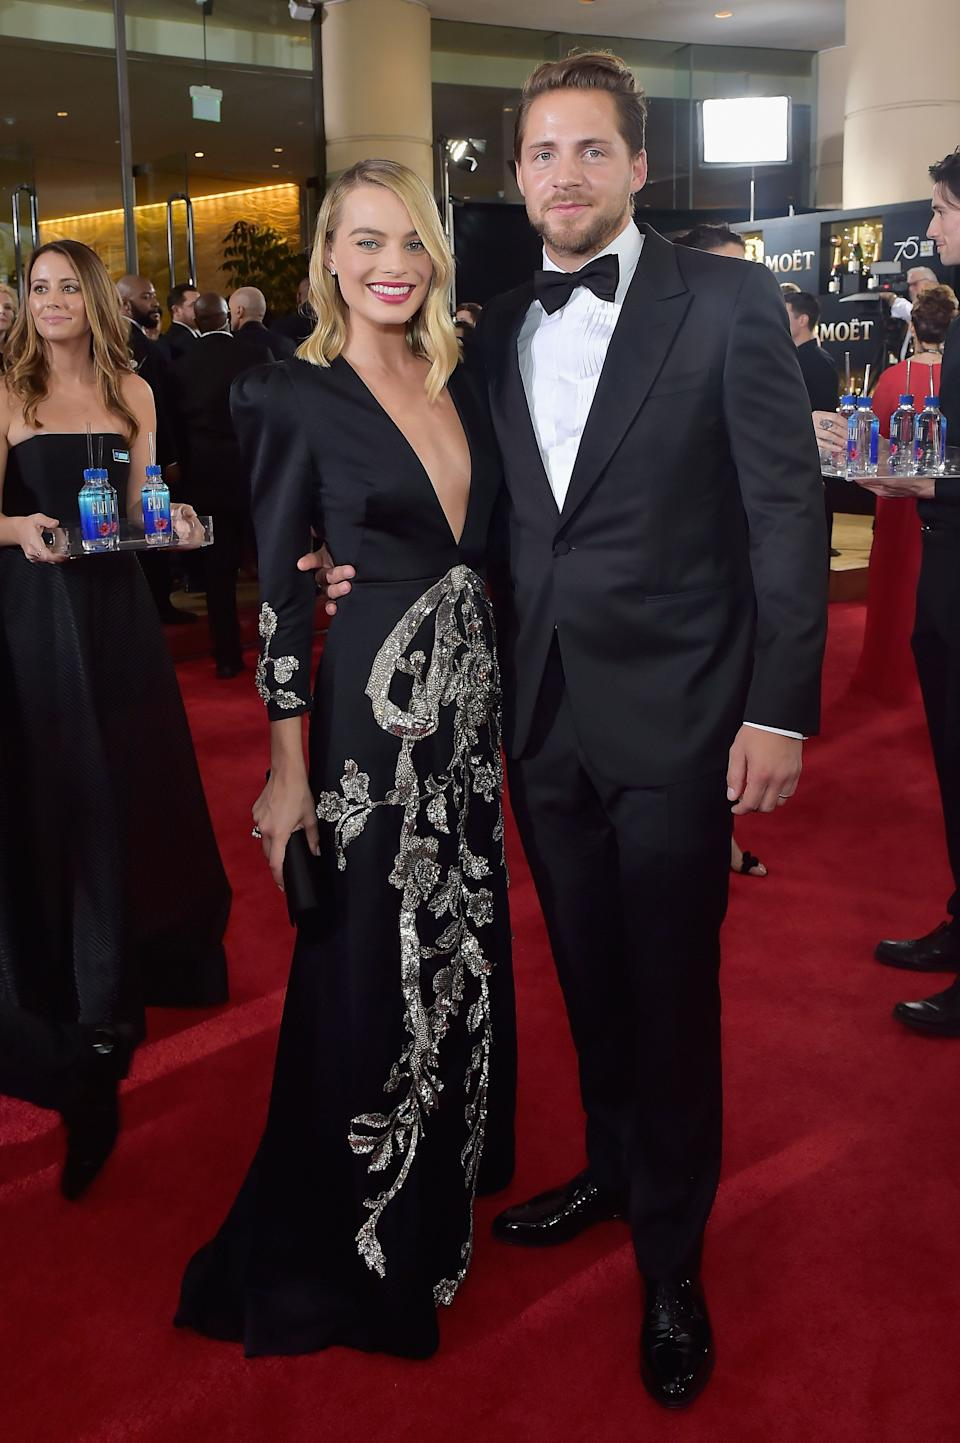 "Margot Robbie secretly tied the knot with producer and screenwriter Tom Ackerley in December 2016 <a href=""https://people.com/movies/margot-robbie-maries-tom-ackerley-reports/"" target=""_blank"" rel=""noopener noreferrer"">in a private ceremony</a> in Austraila's Byron Bay. <br /><br><br><br />In an interview last November with PORTER magazine, the ""Suicide Squad"" actress opened up about how marriage had changed her for the better.<br /><br><br><br />""Being married is actually the most fun ever,"" <a href=""https://people.com/movies/margot-robbie-being-married-most-fun-ever/"" target=""_blank"" rel=""noopener noreferrer"">Robbie said</a>. ""Life got way more fun somehow. I have a responsibility being someone's wife, I want to be better."""